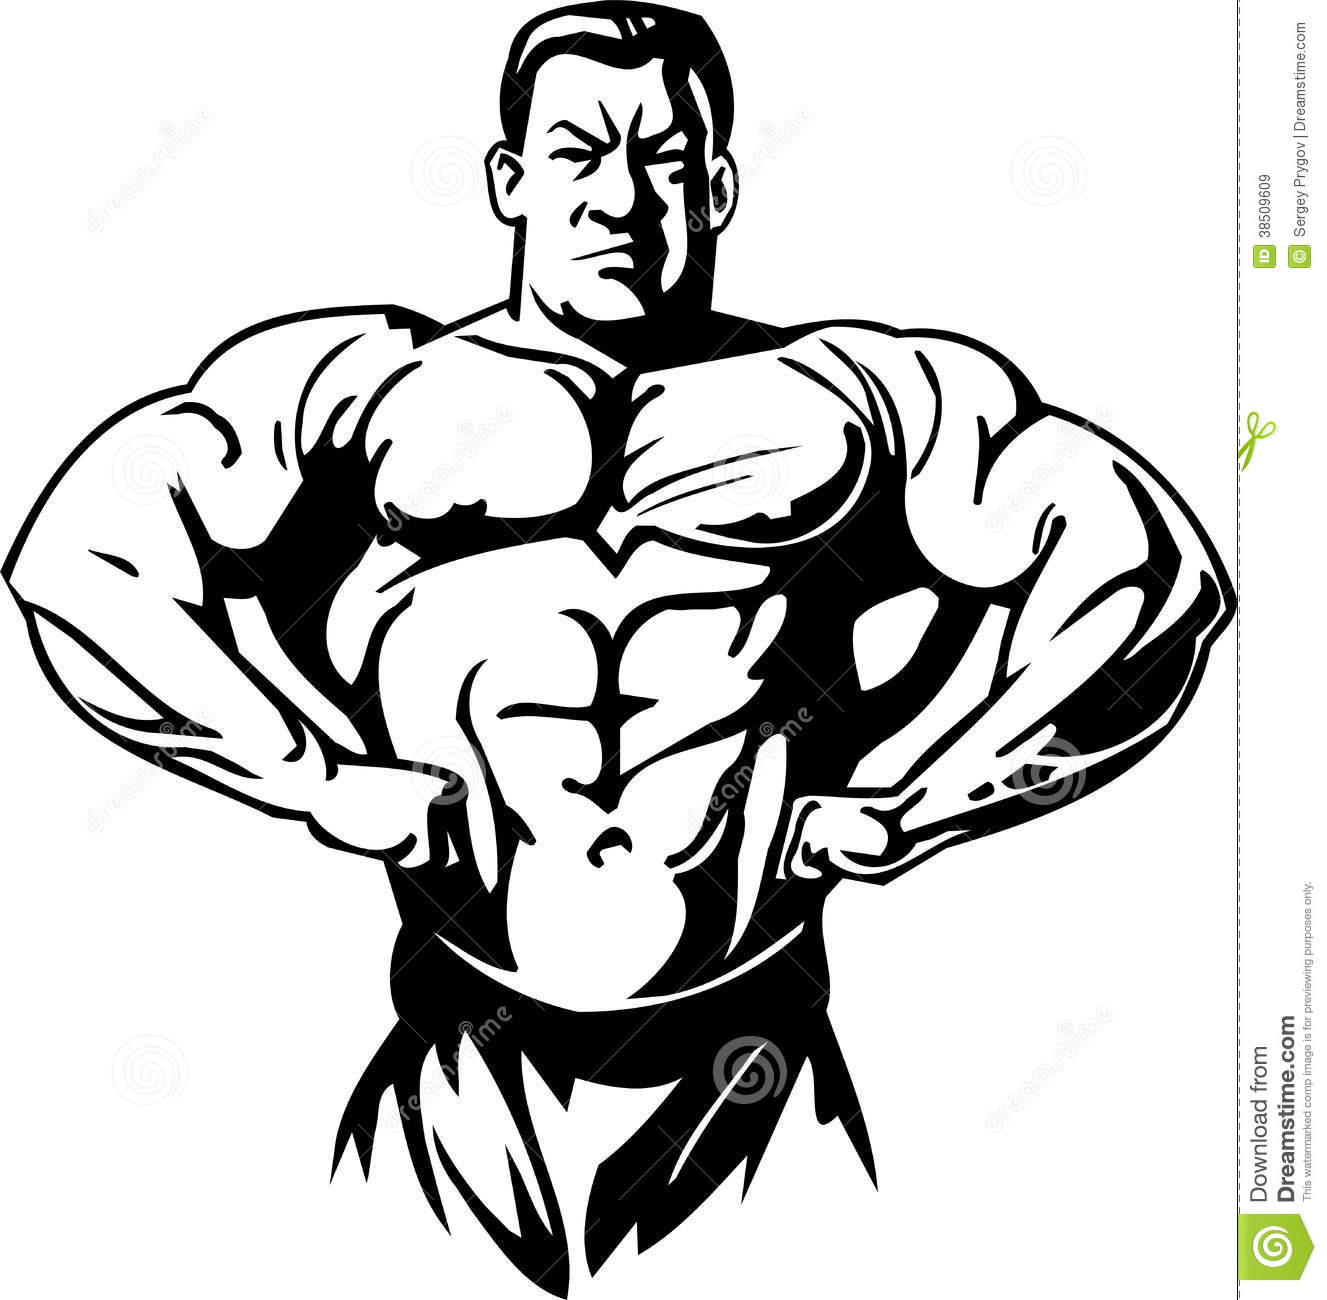 bodybuilding stock illustrations 25 015 bodybuilding stock rh dreamstime com bodybuilding logos graphic design bodybuilding logs